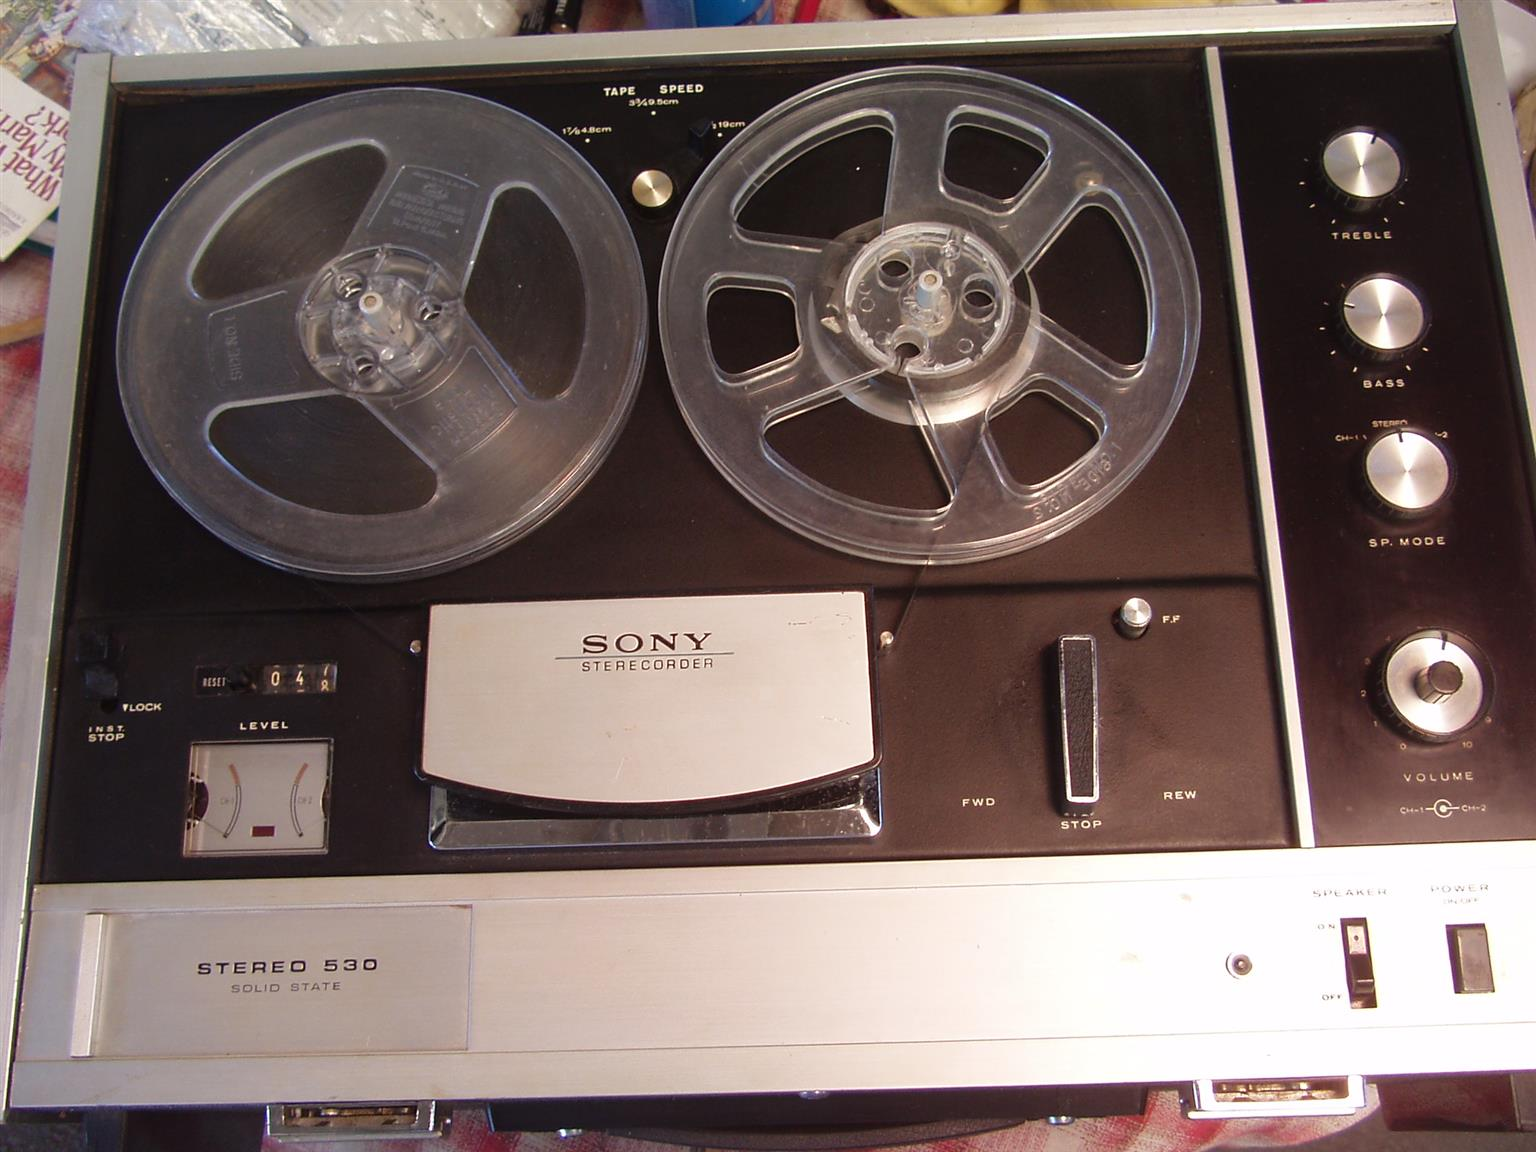 Sony TC-530, Stereo 530, Reel to Reel Recorder, Vintage - in excellent working order